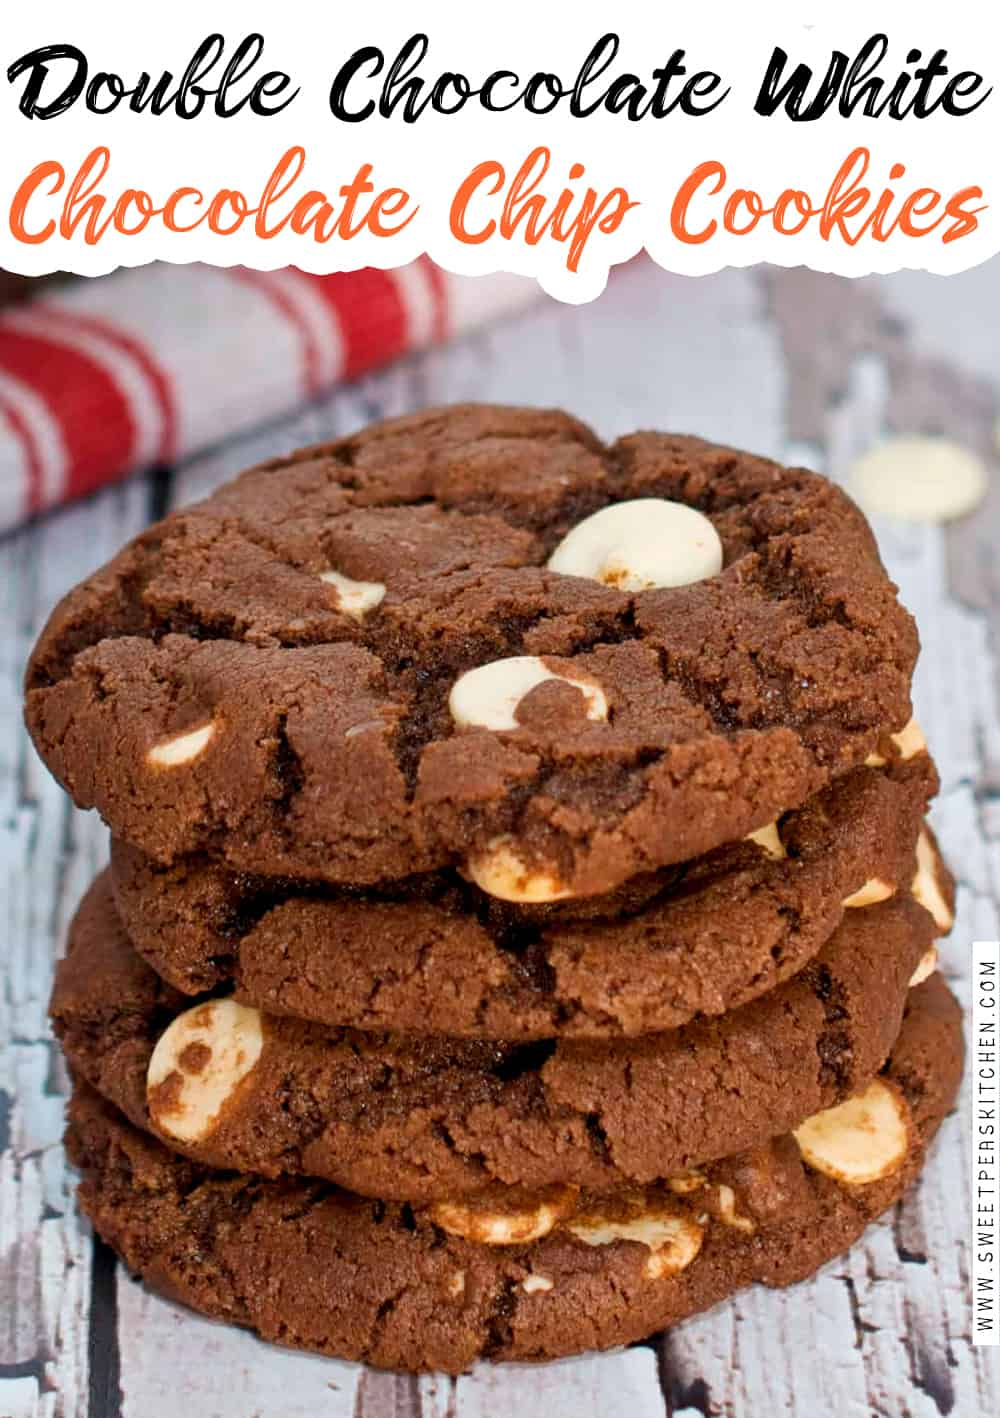 Double Chocolate White Chocolate Chip Cookies